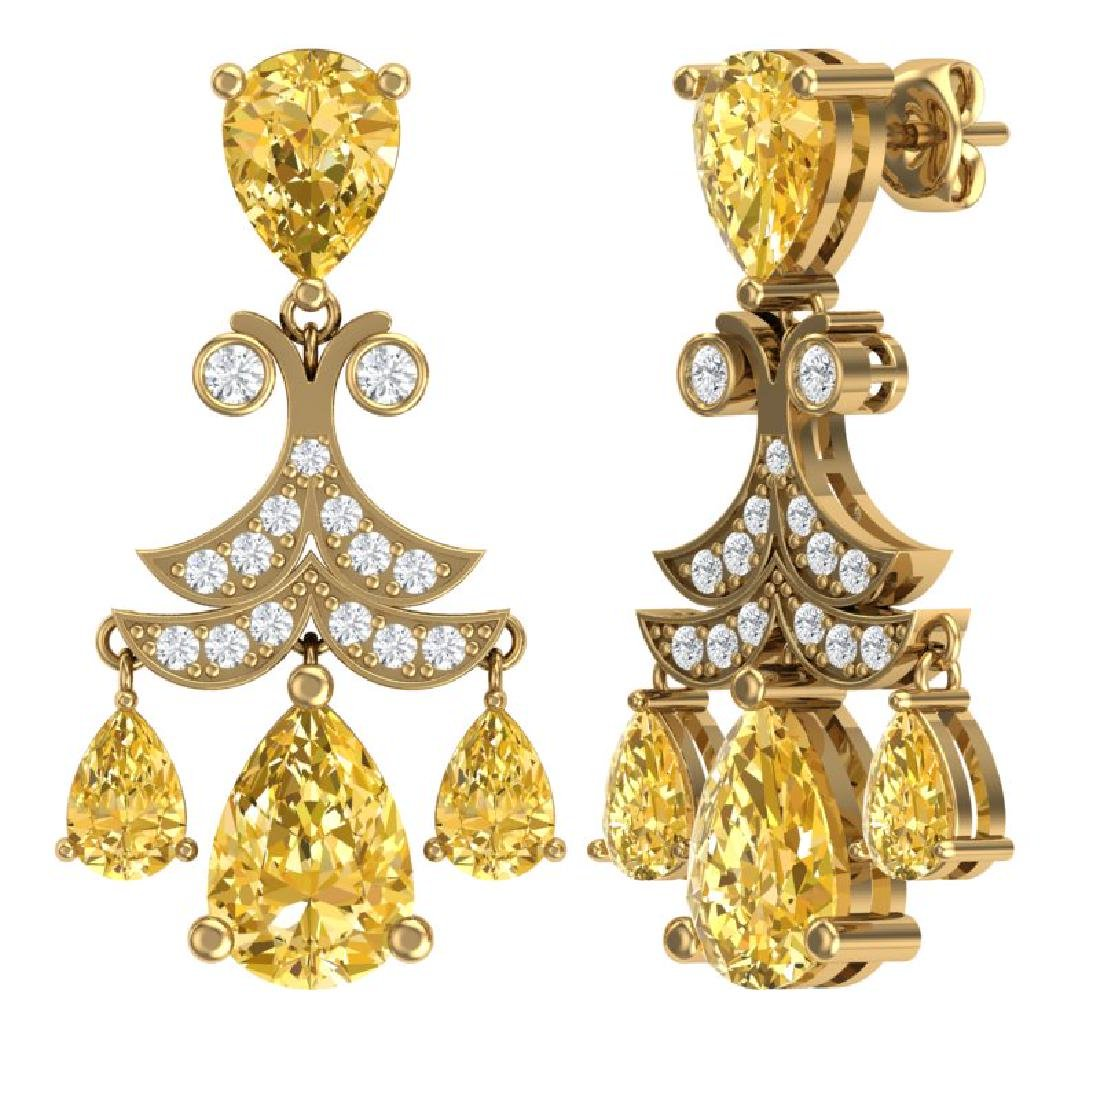 10.41 CTW Royalty Canary Citrine & VS Diamond Earrings - 3